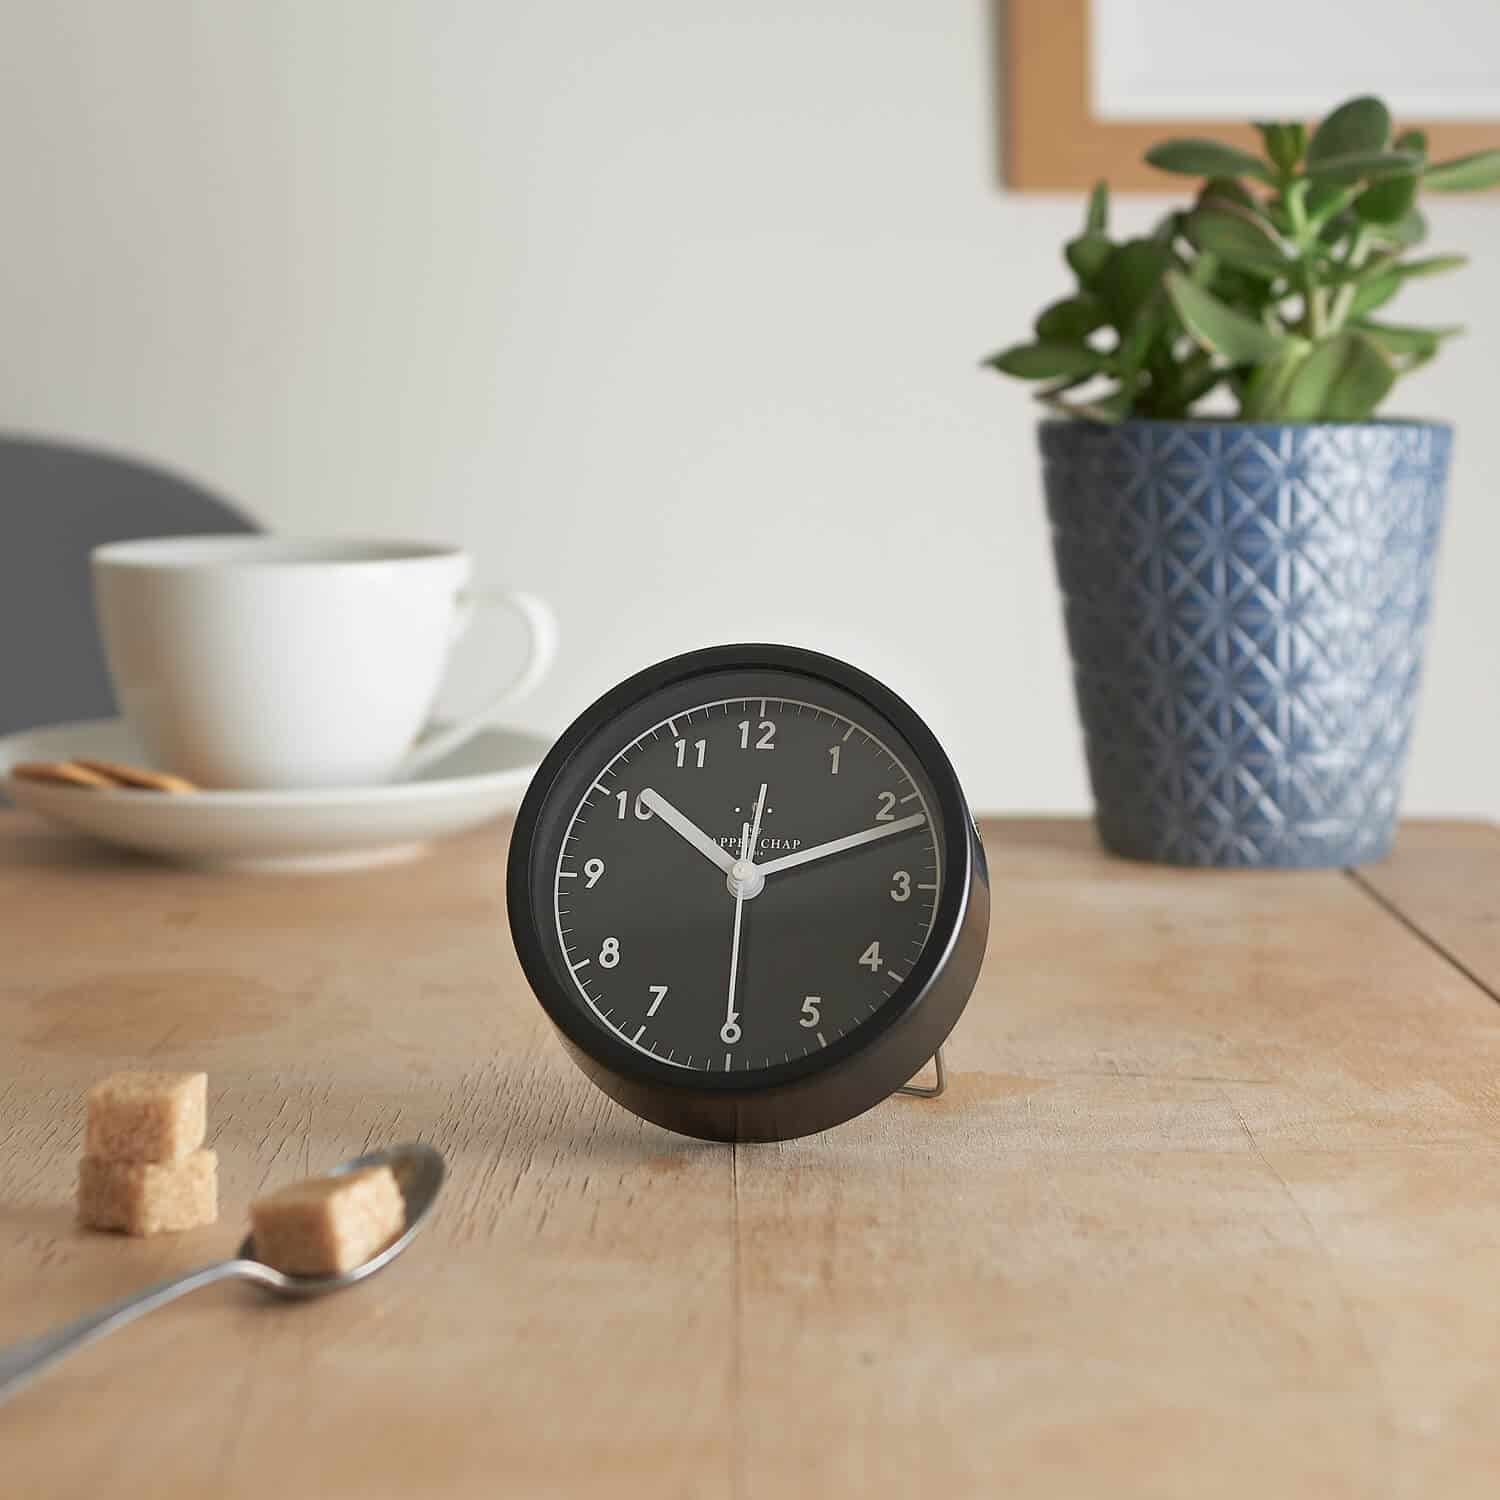 cgb giftware product photography dapper chap range (3)